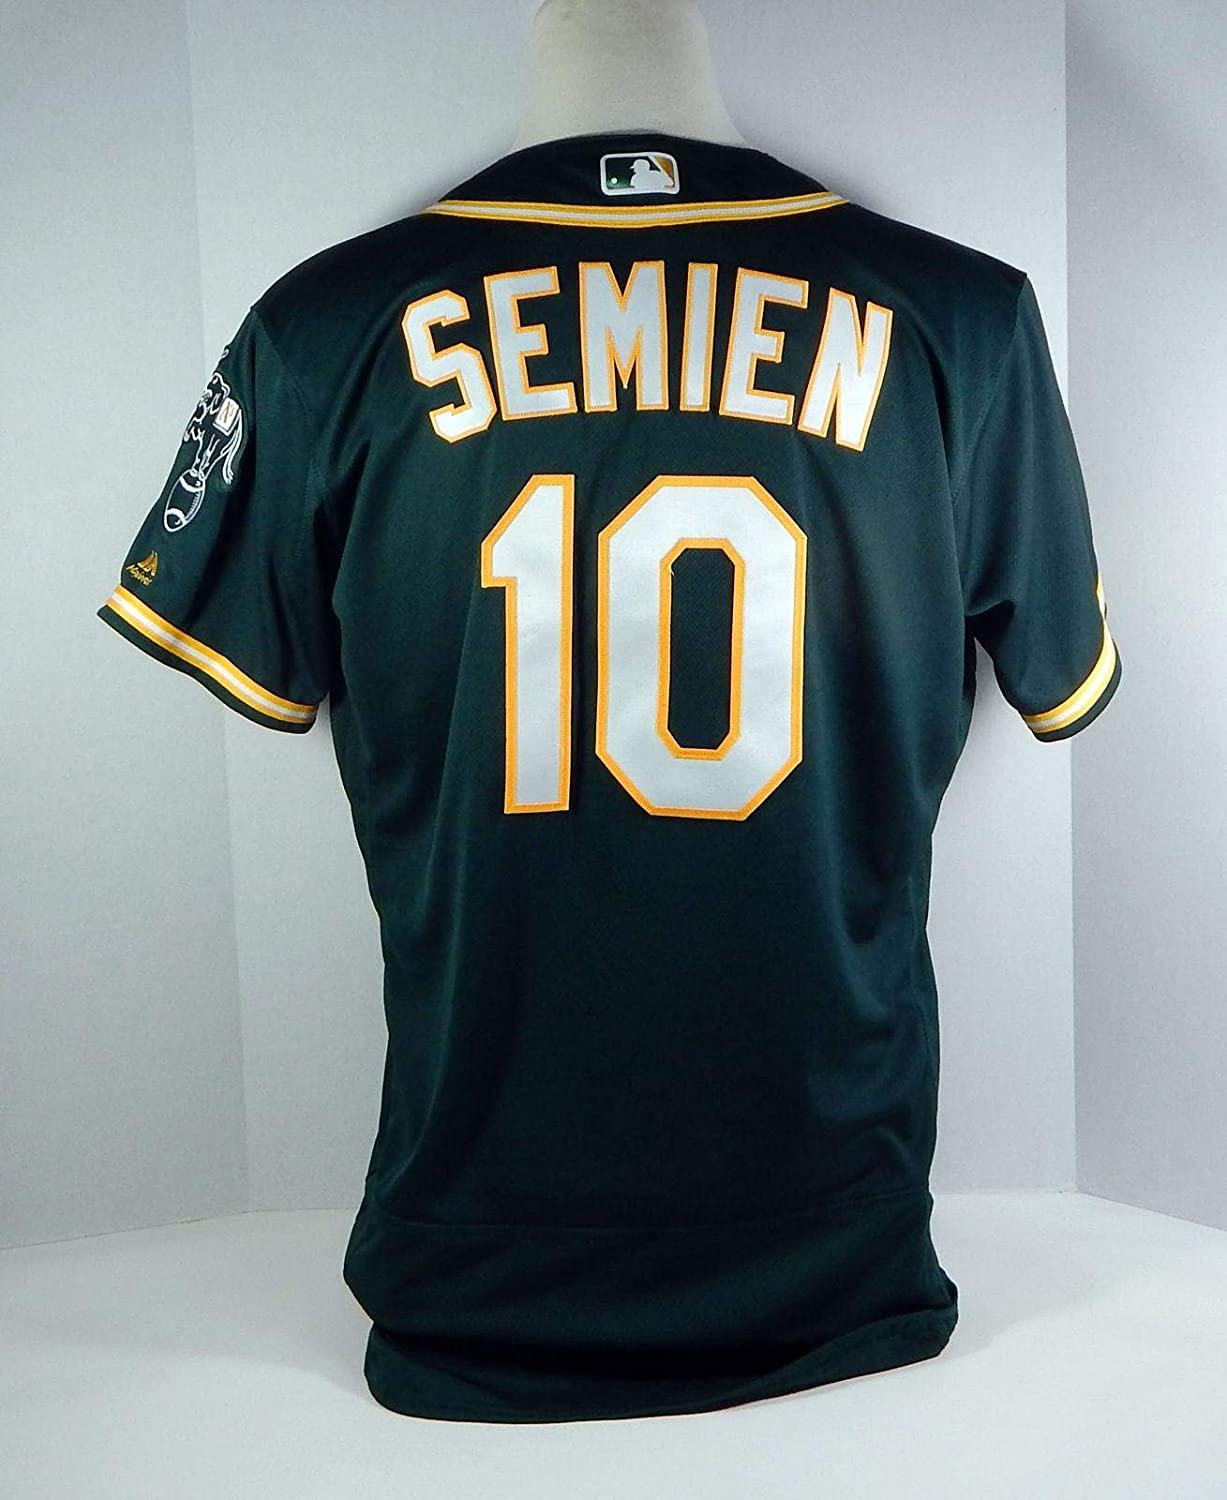 promo code 981d1 1a46c 2018 Oakland Athletics A's Marcus Semien #10 Game Issued ...